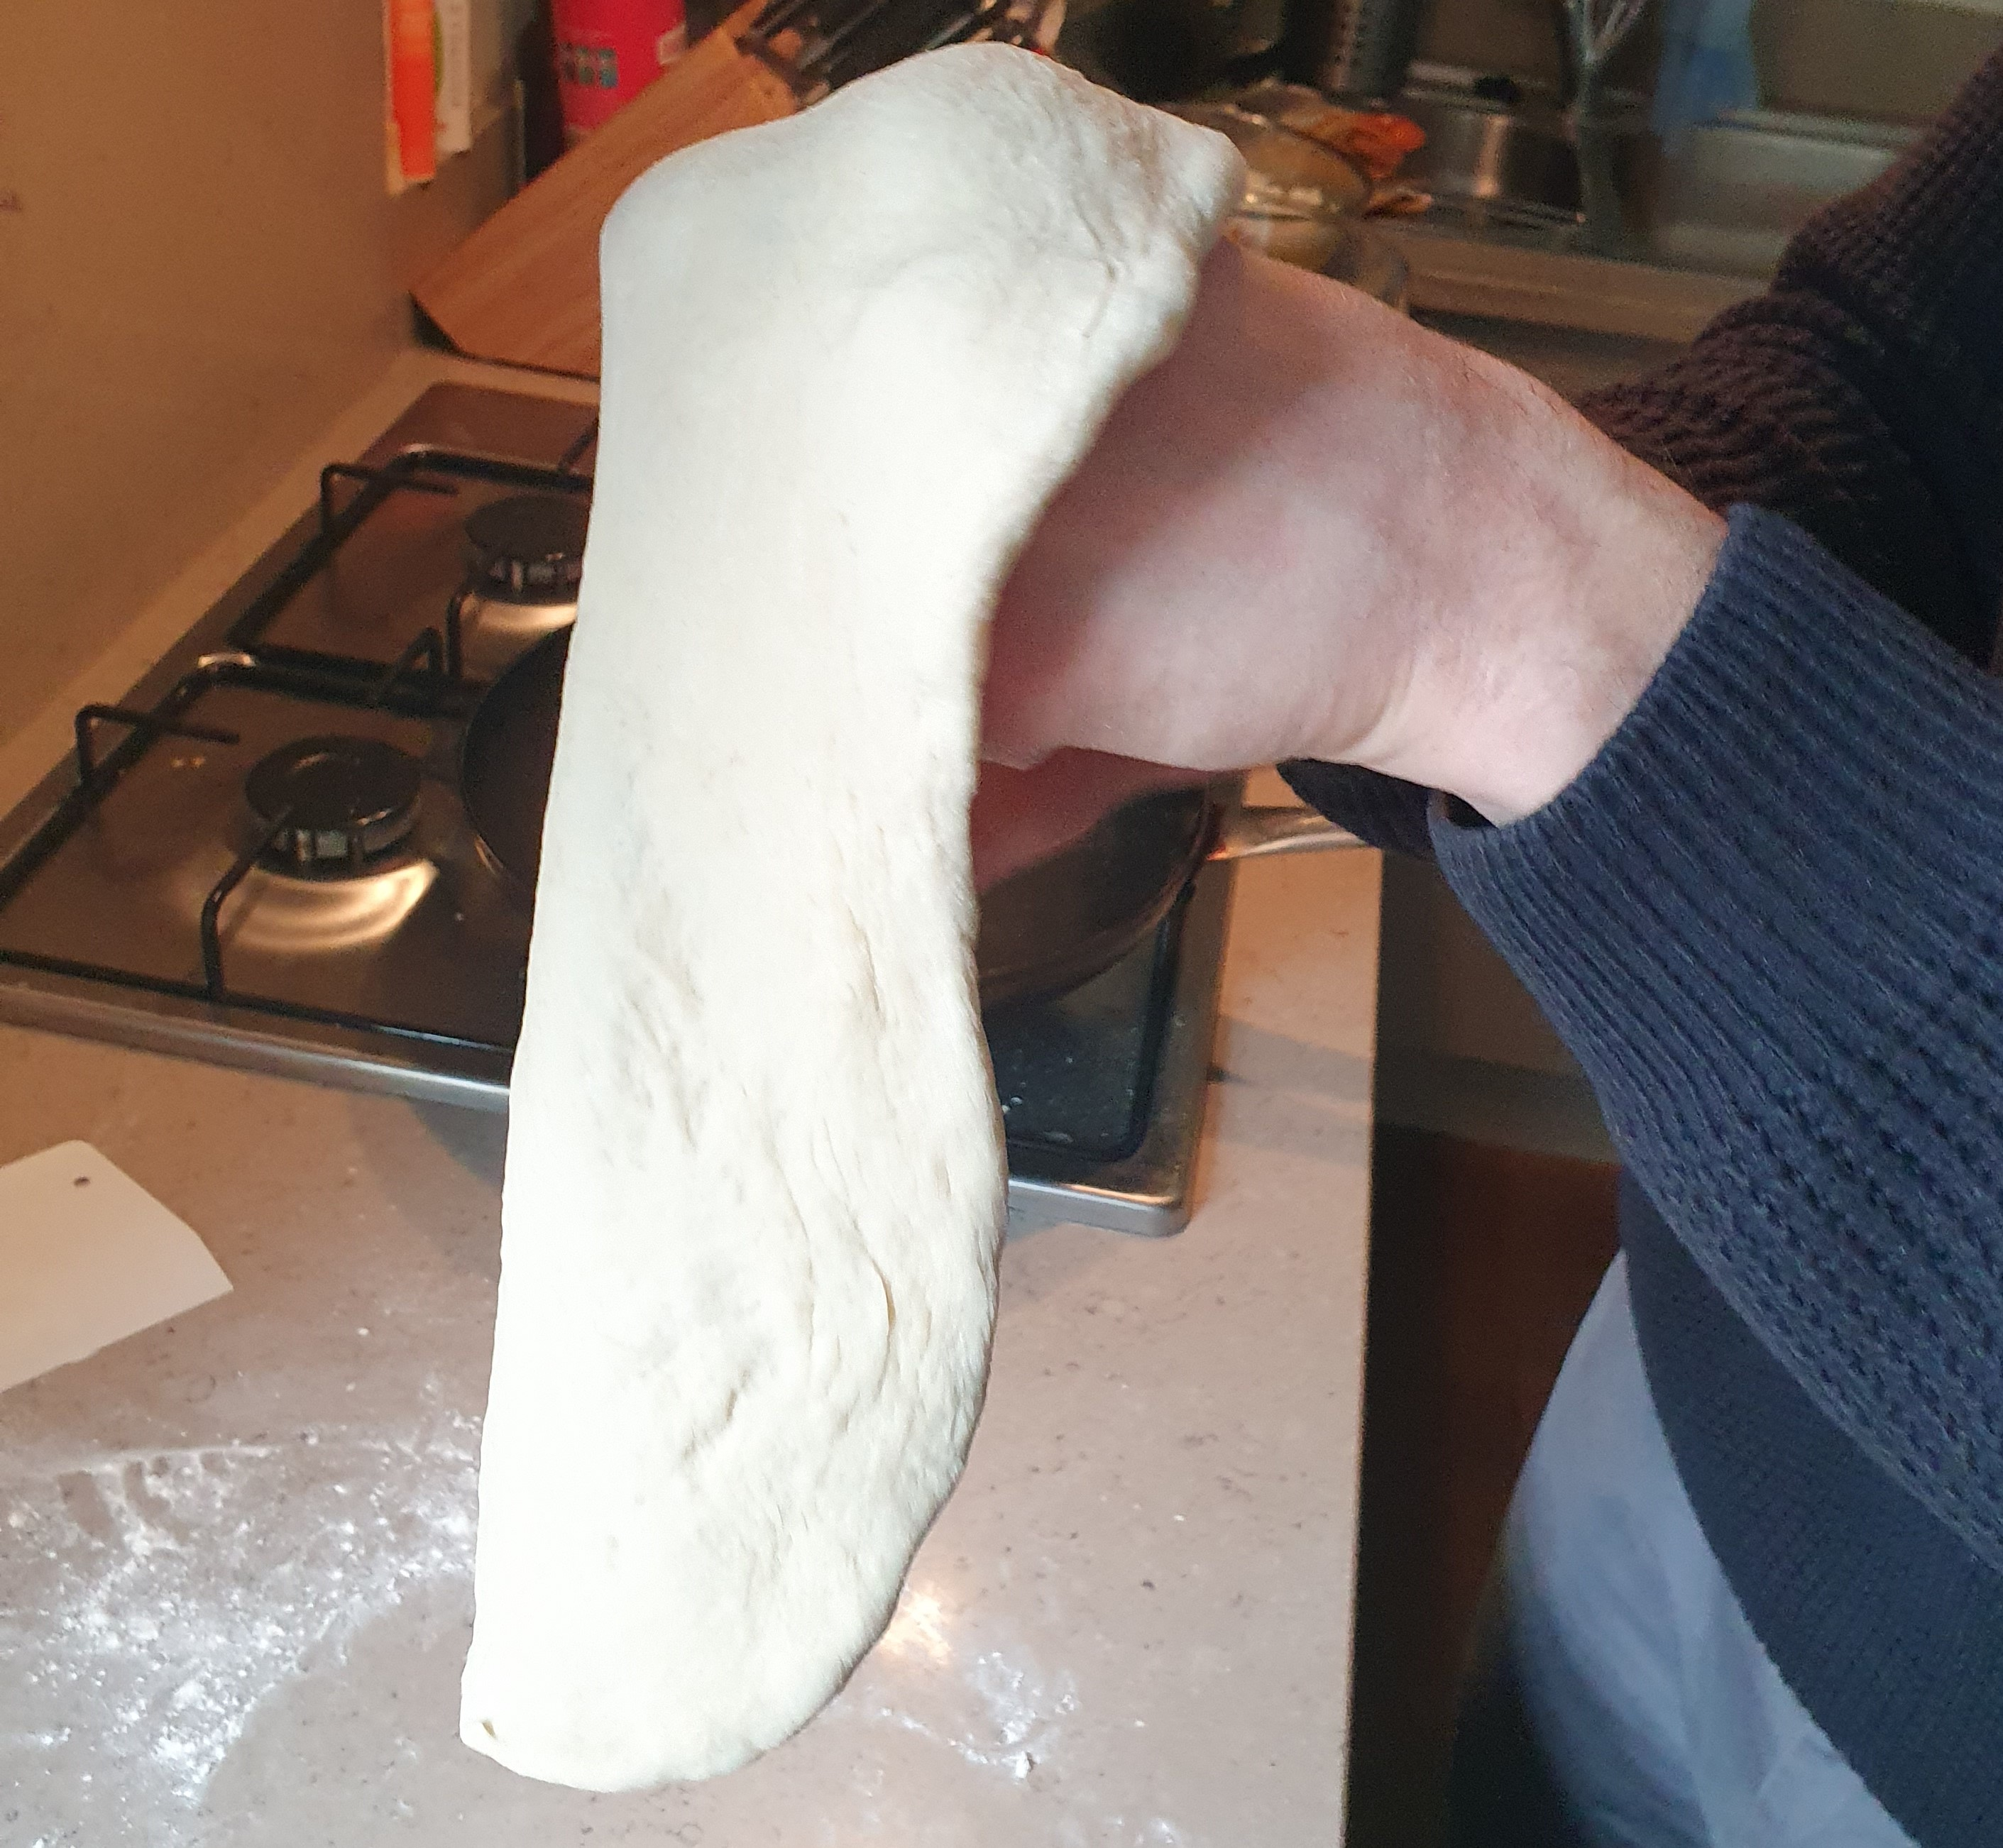 Turning the dough